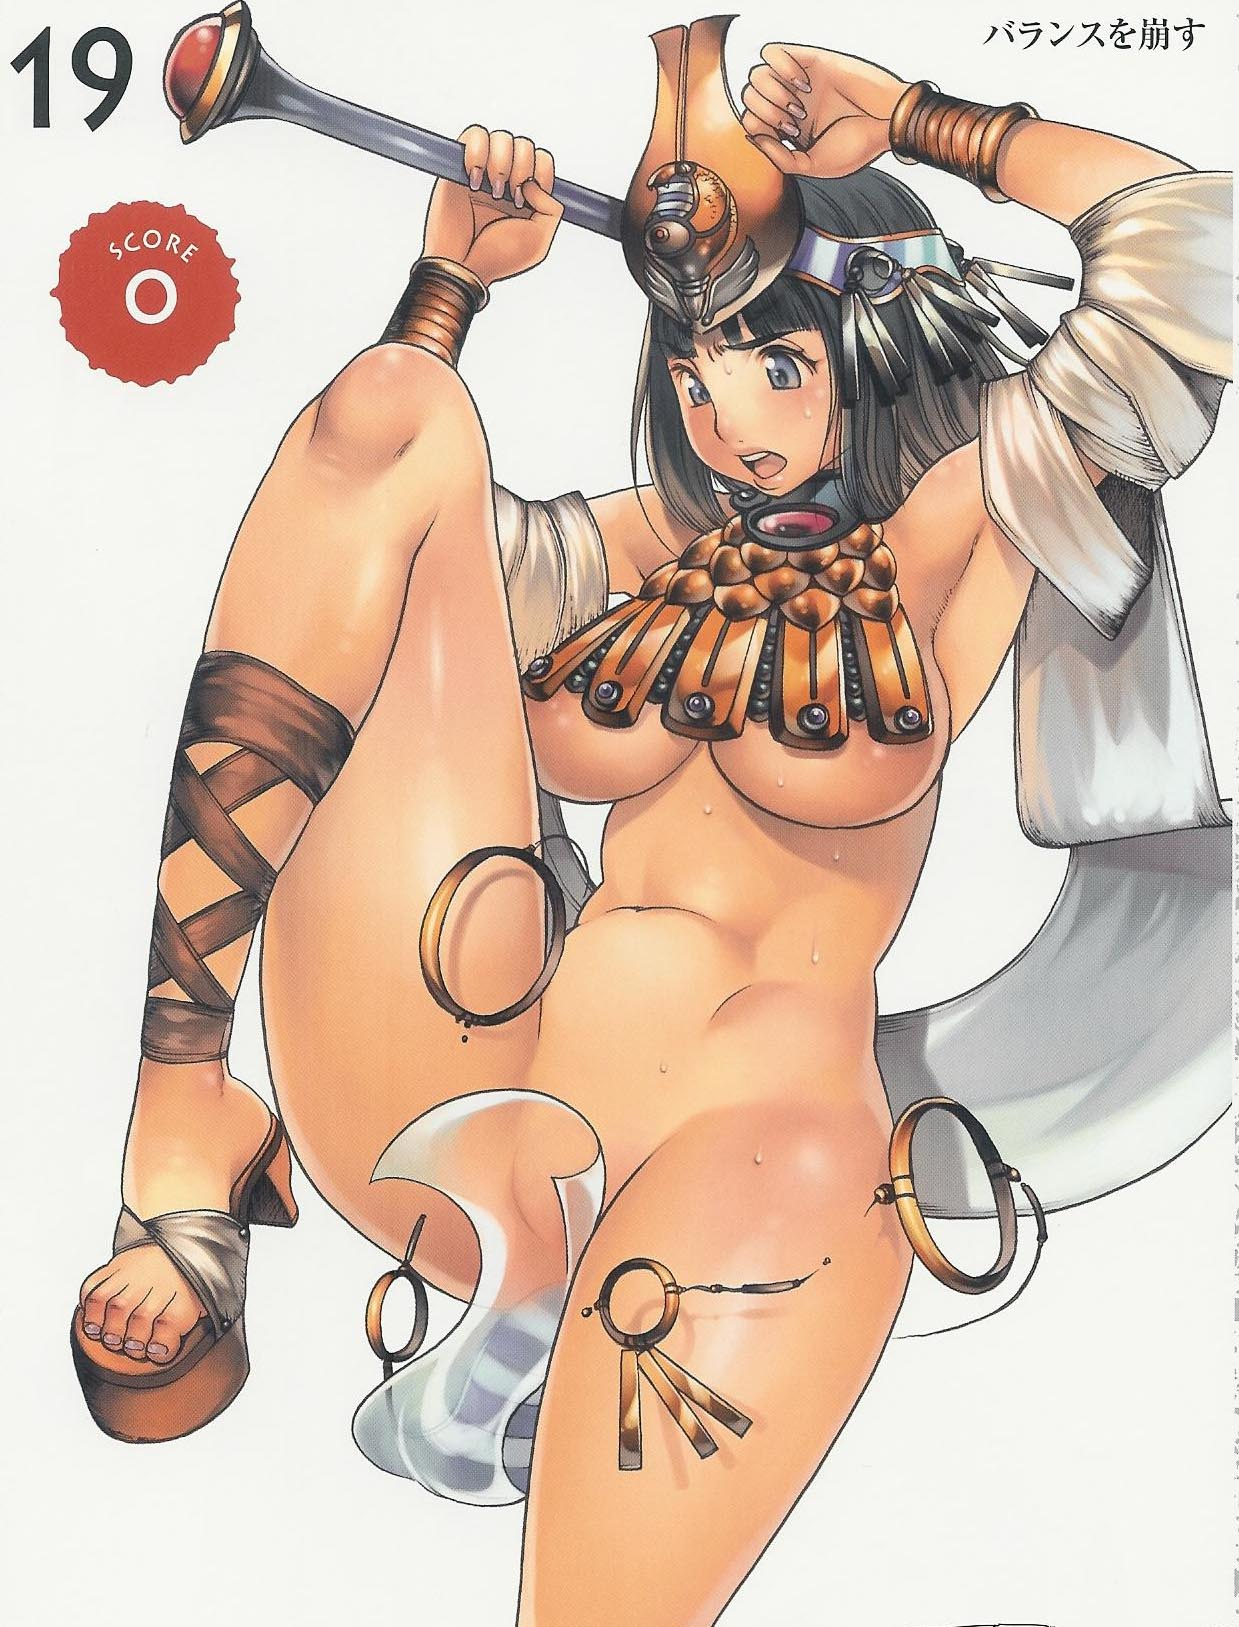 Seems impossible. Queens blade covered pussy can